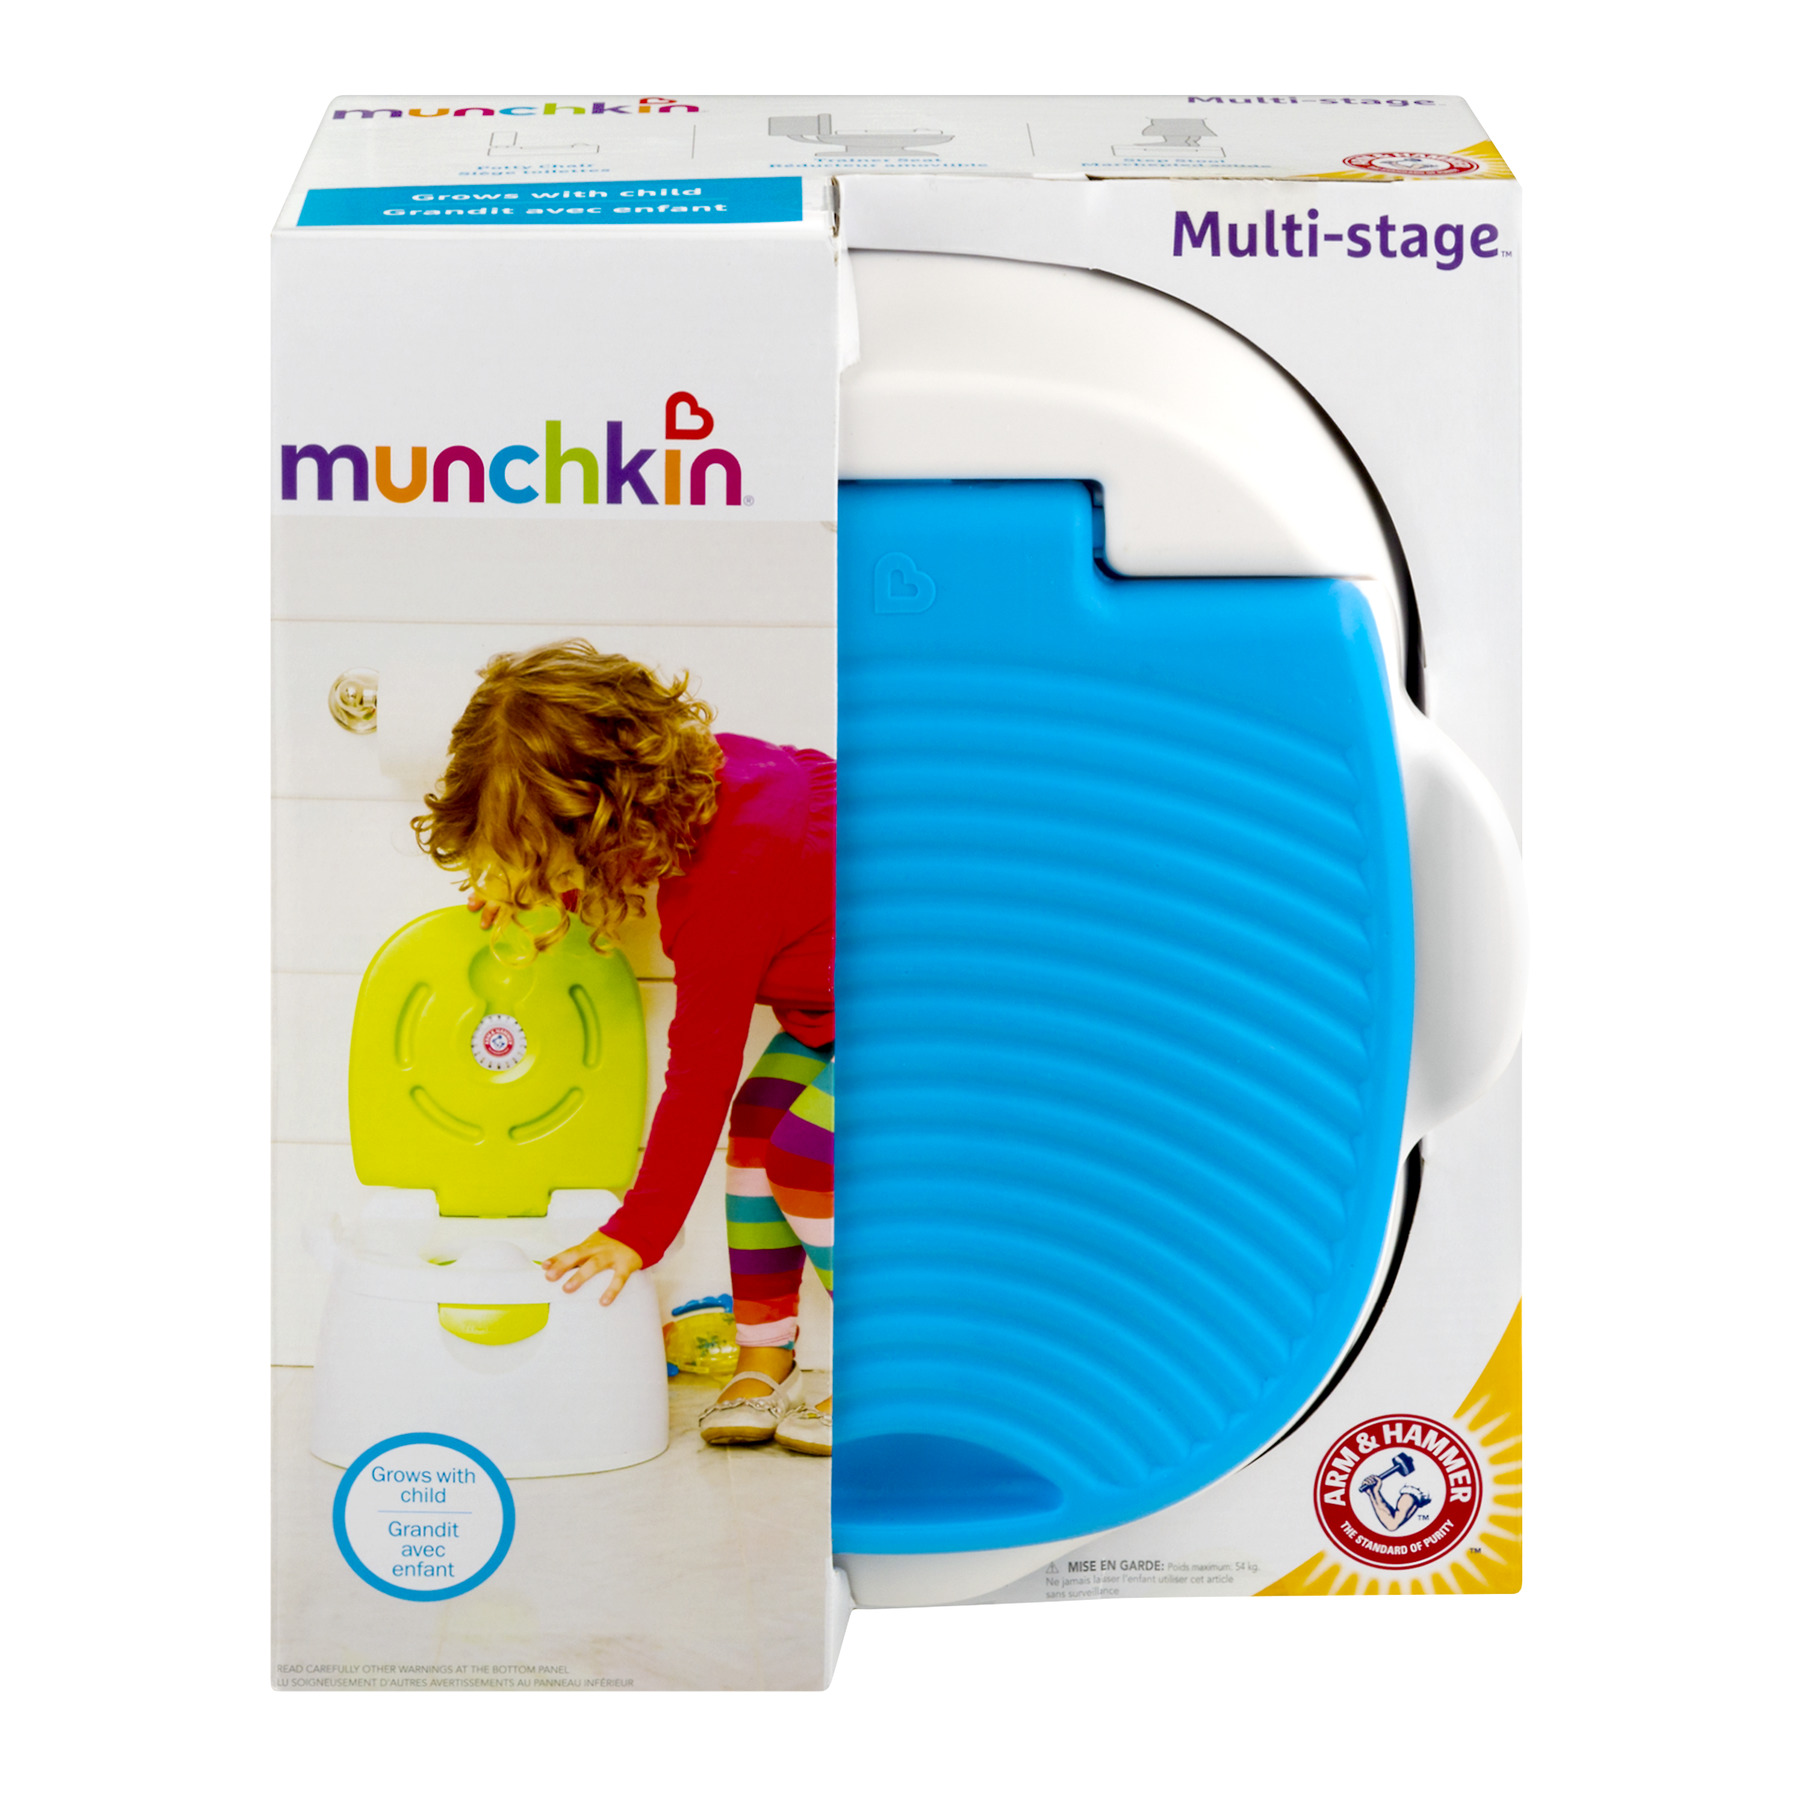 Munchkin Multi-Stage Toilet Trainer, 1.0 CT by Munchkin